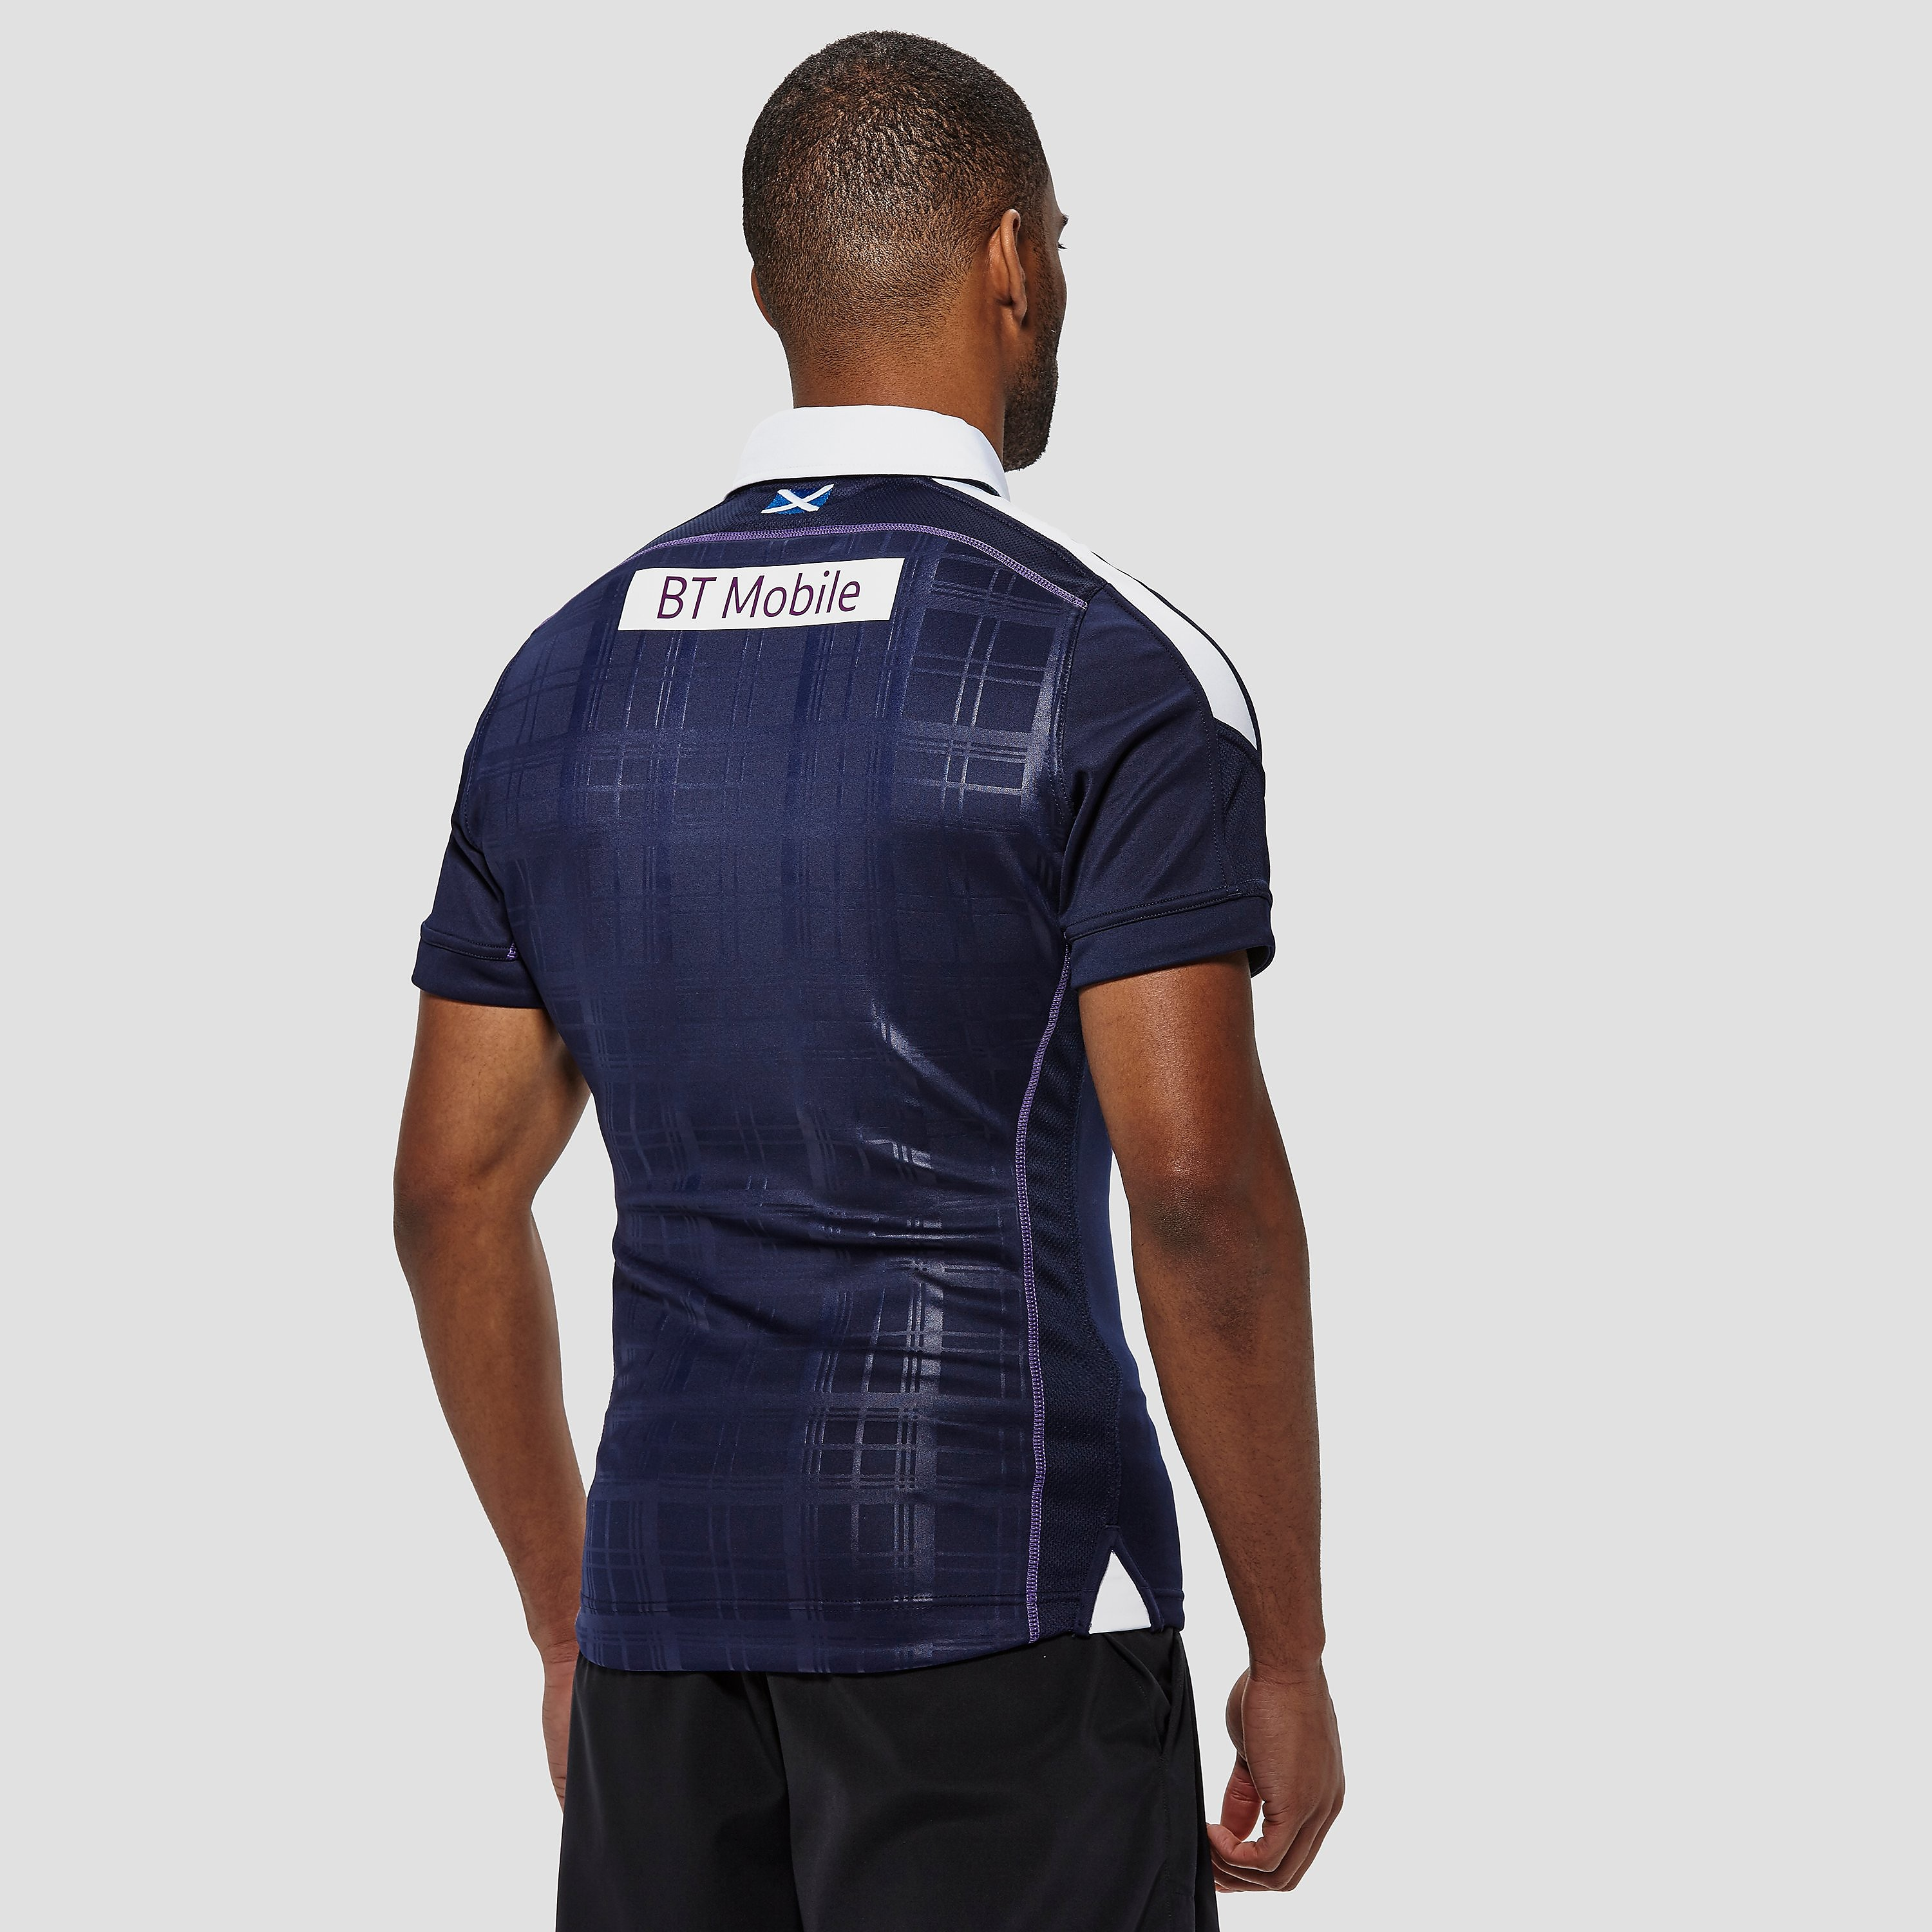 Macron Scotland 2016/17 Replica Home Rugby Jersey